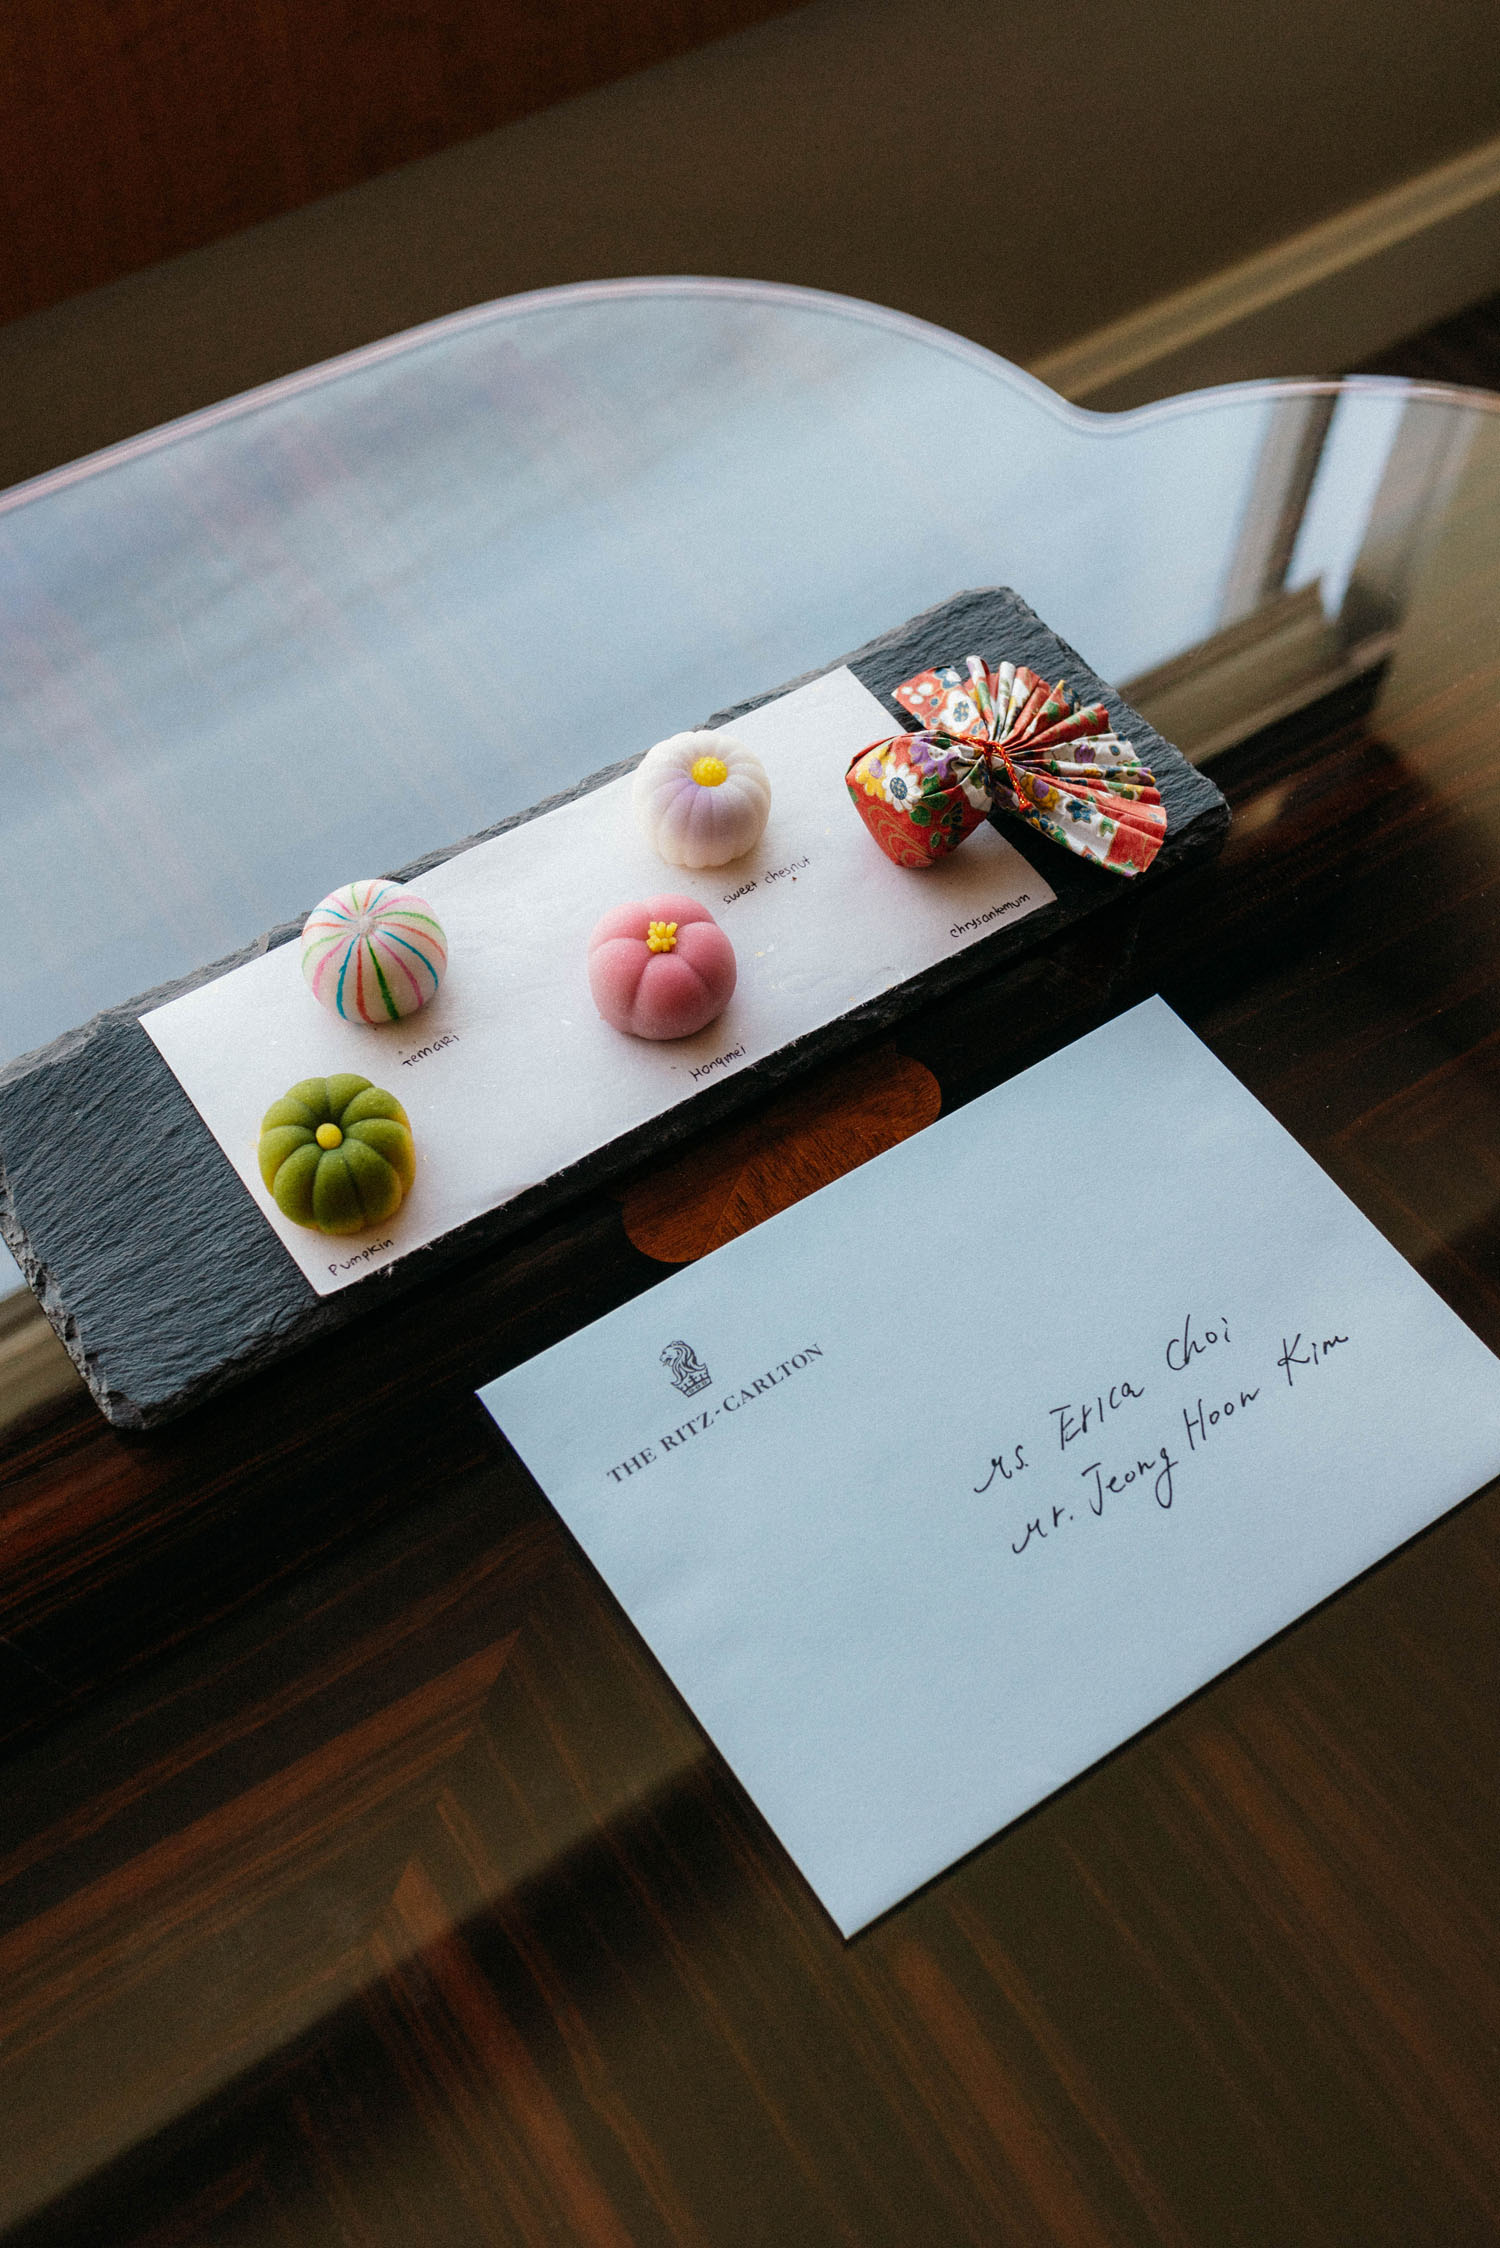 A warm welcome from  The Ritz Carlton, Tokyo